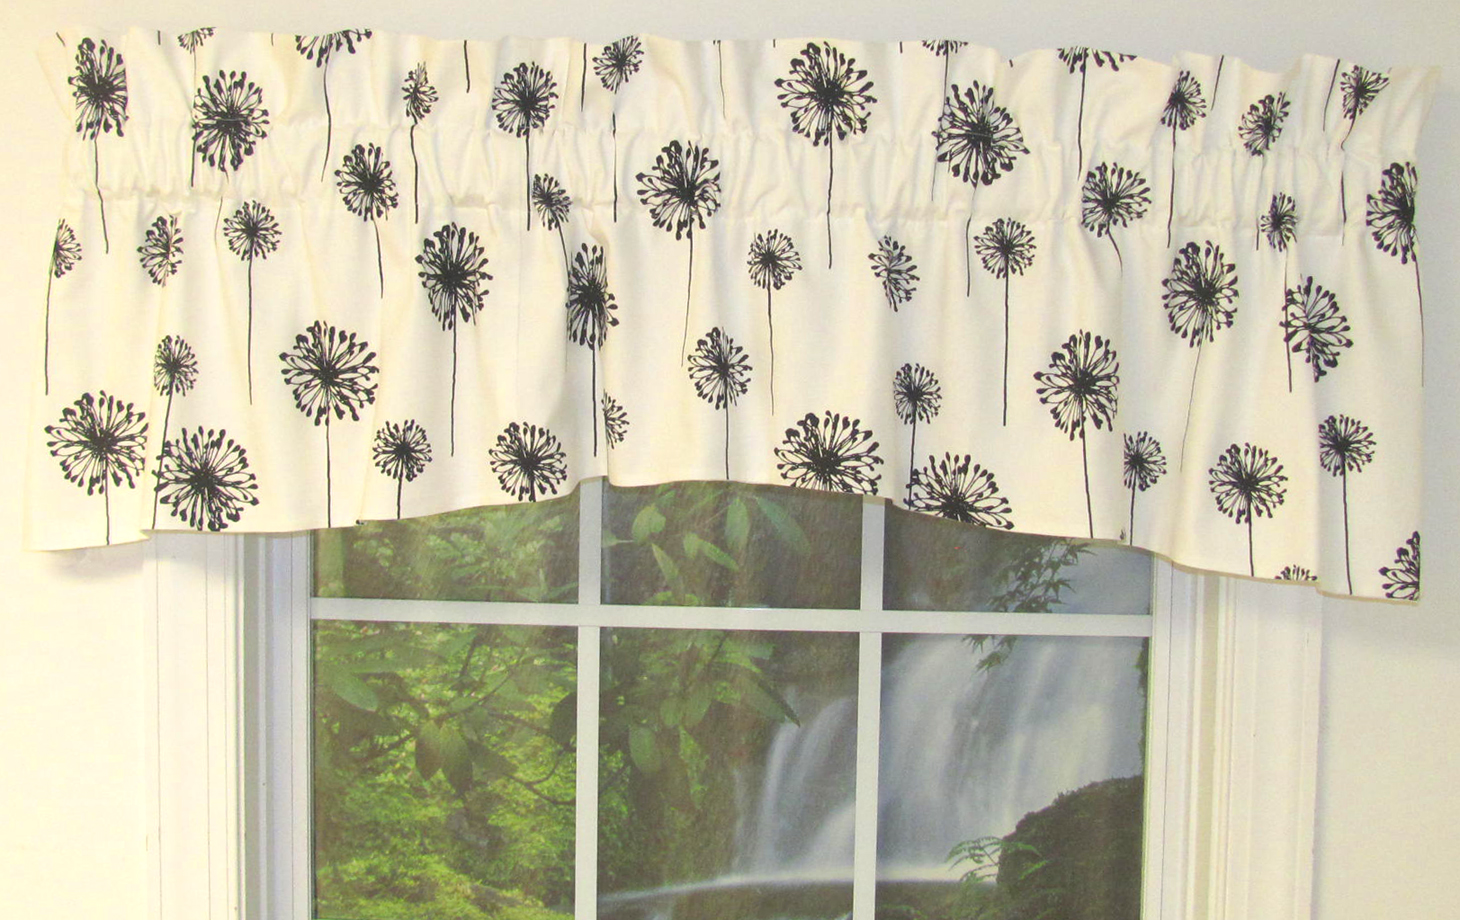 shades roman valances angeles custom fabric draperies valance ca by los window treatments galaxy